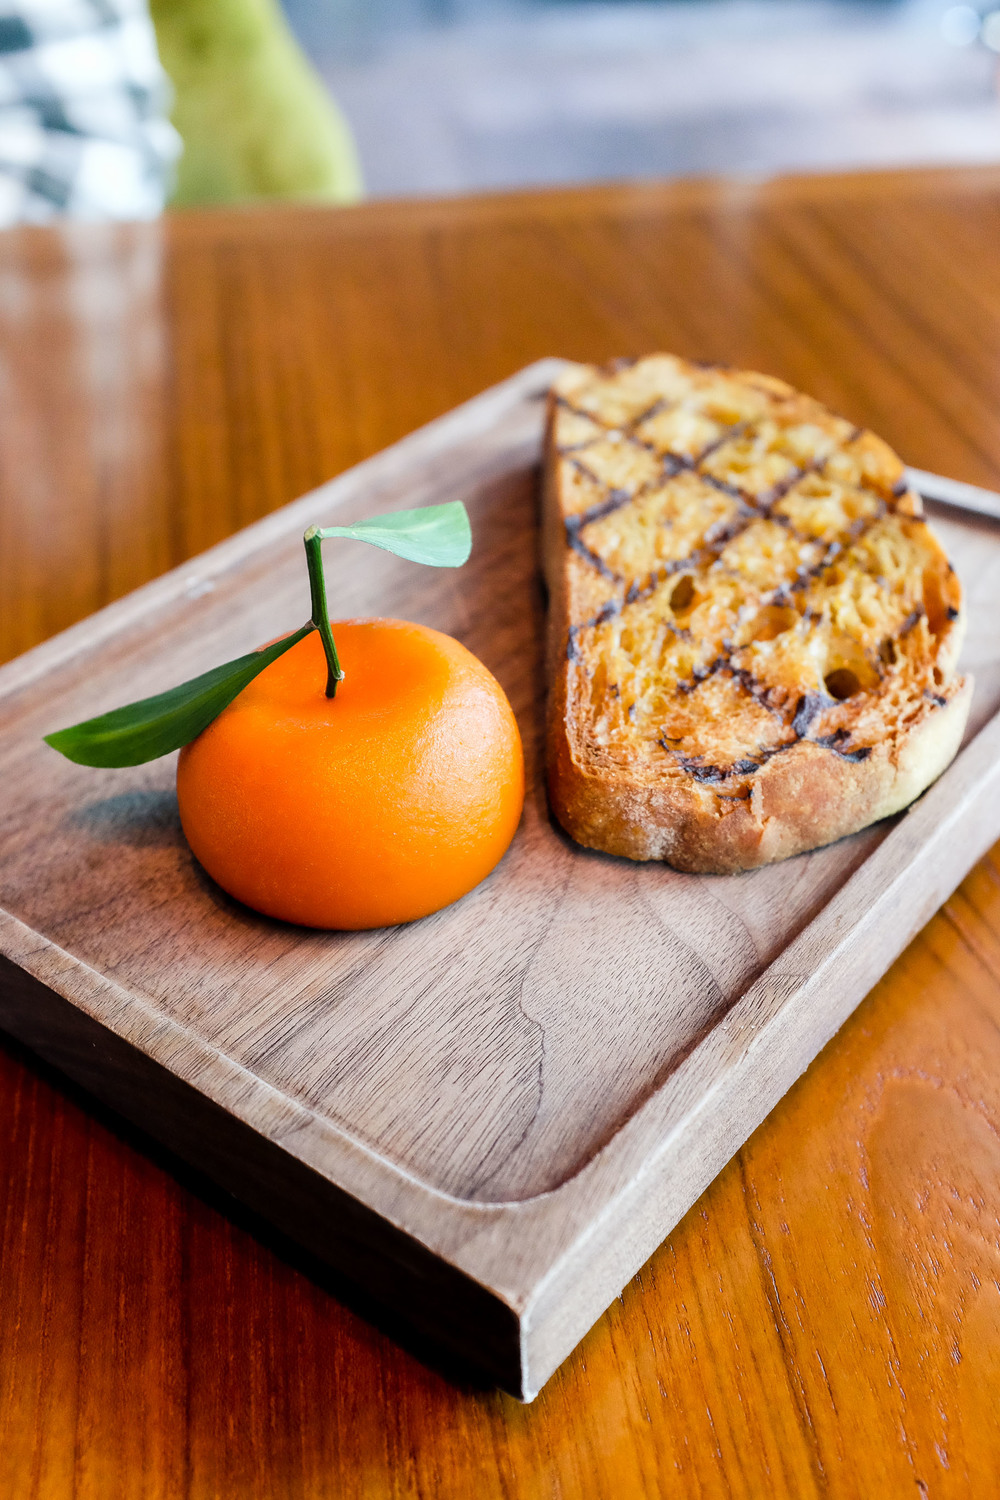 Meat Fruit (c.1500) - Mandarin, chicken liver parfait & grilled bread $38.00